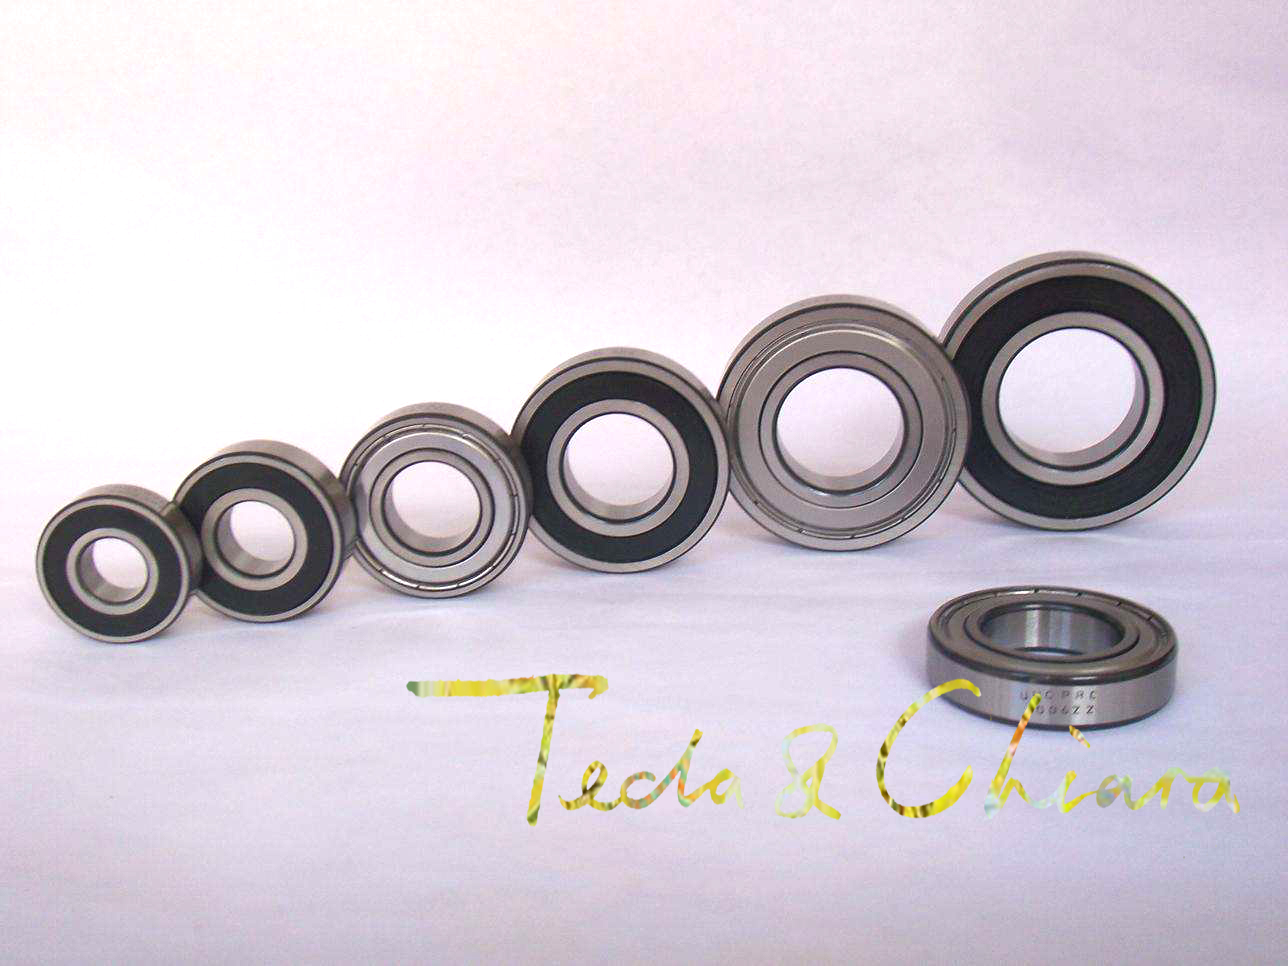 6702 6702ZZ 6702RS 6702-2Z 6702Z 6702-2RS ZZ RS RZ 2RZ Deep Groove Ball Bearings 15 x 21 x 4mm High Quality 604 604zz 604rs 604 2z 604z 604 2rs zz rs rz 2rz deep groove ball bearings 4 x 12 x 4mm high quality